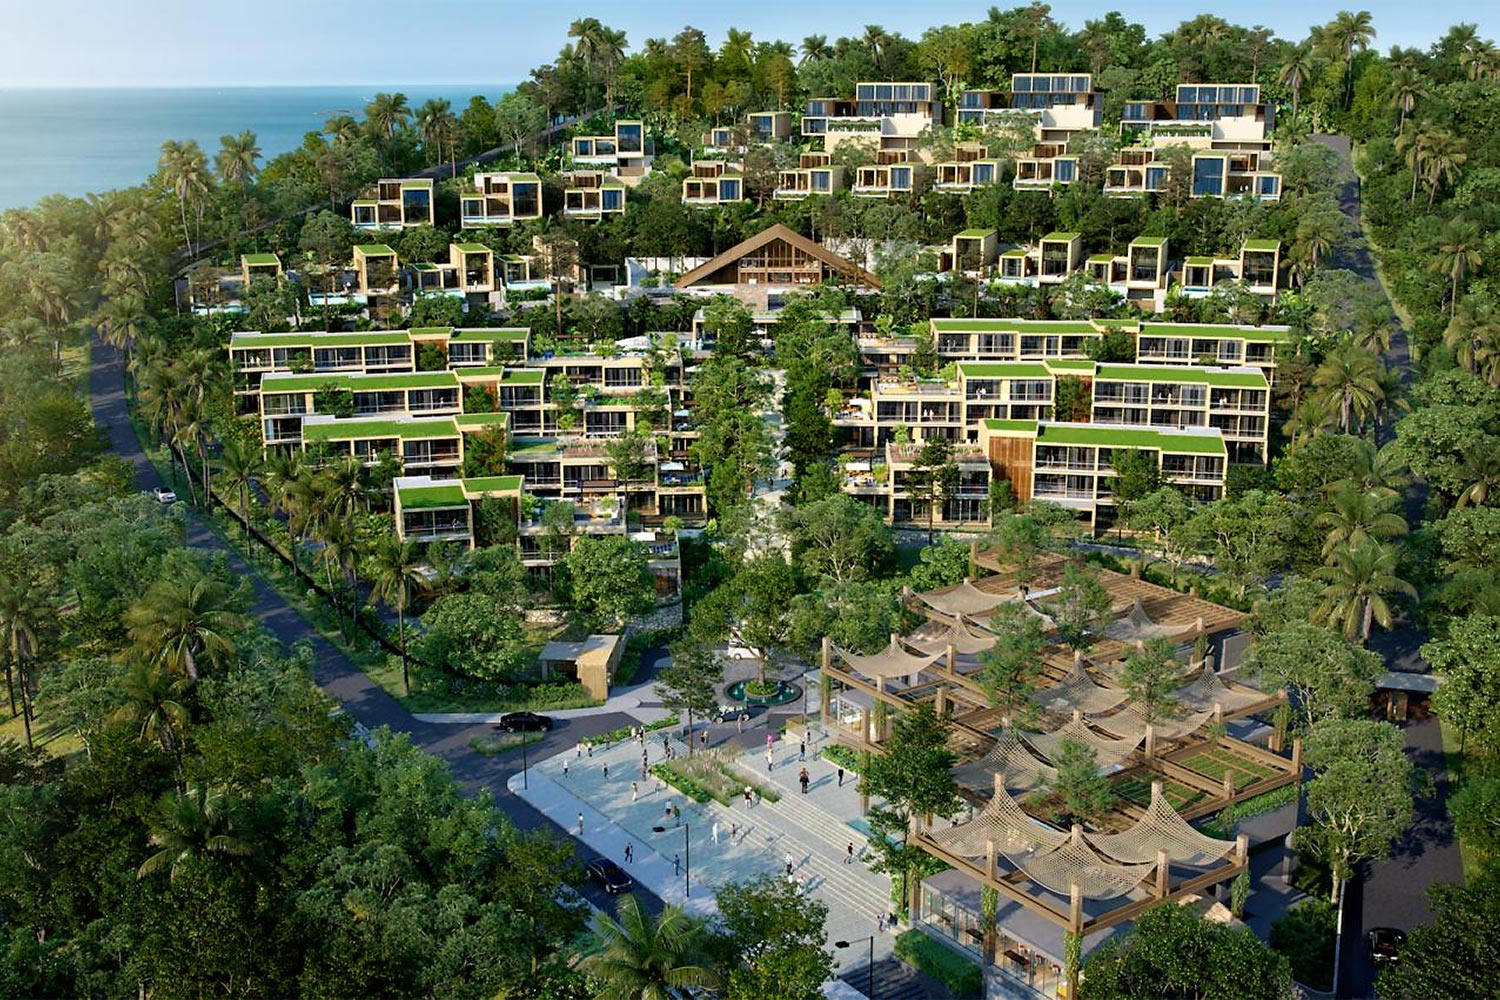 Aquarius Residences and Resort Koh Chang, AQI's flagship project, is scheduled to open in three phases starting in 2022.